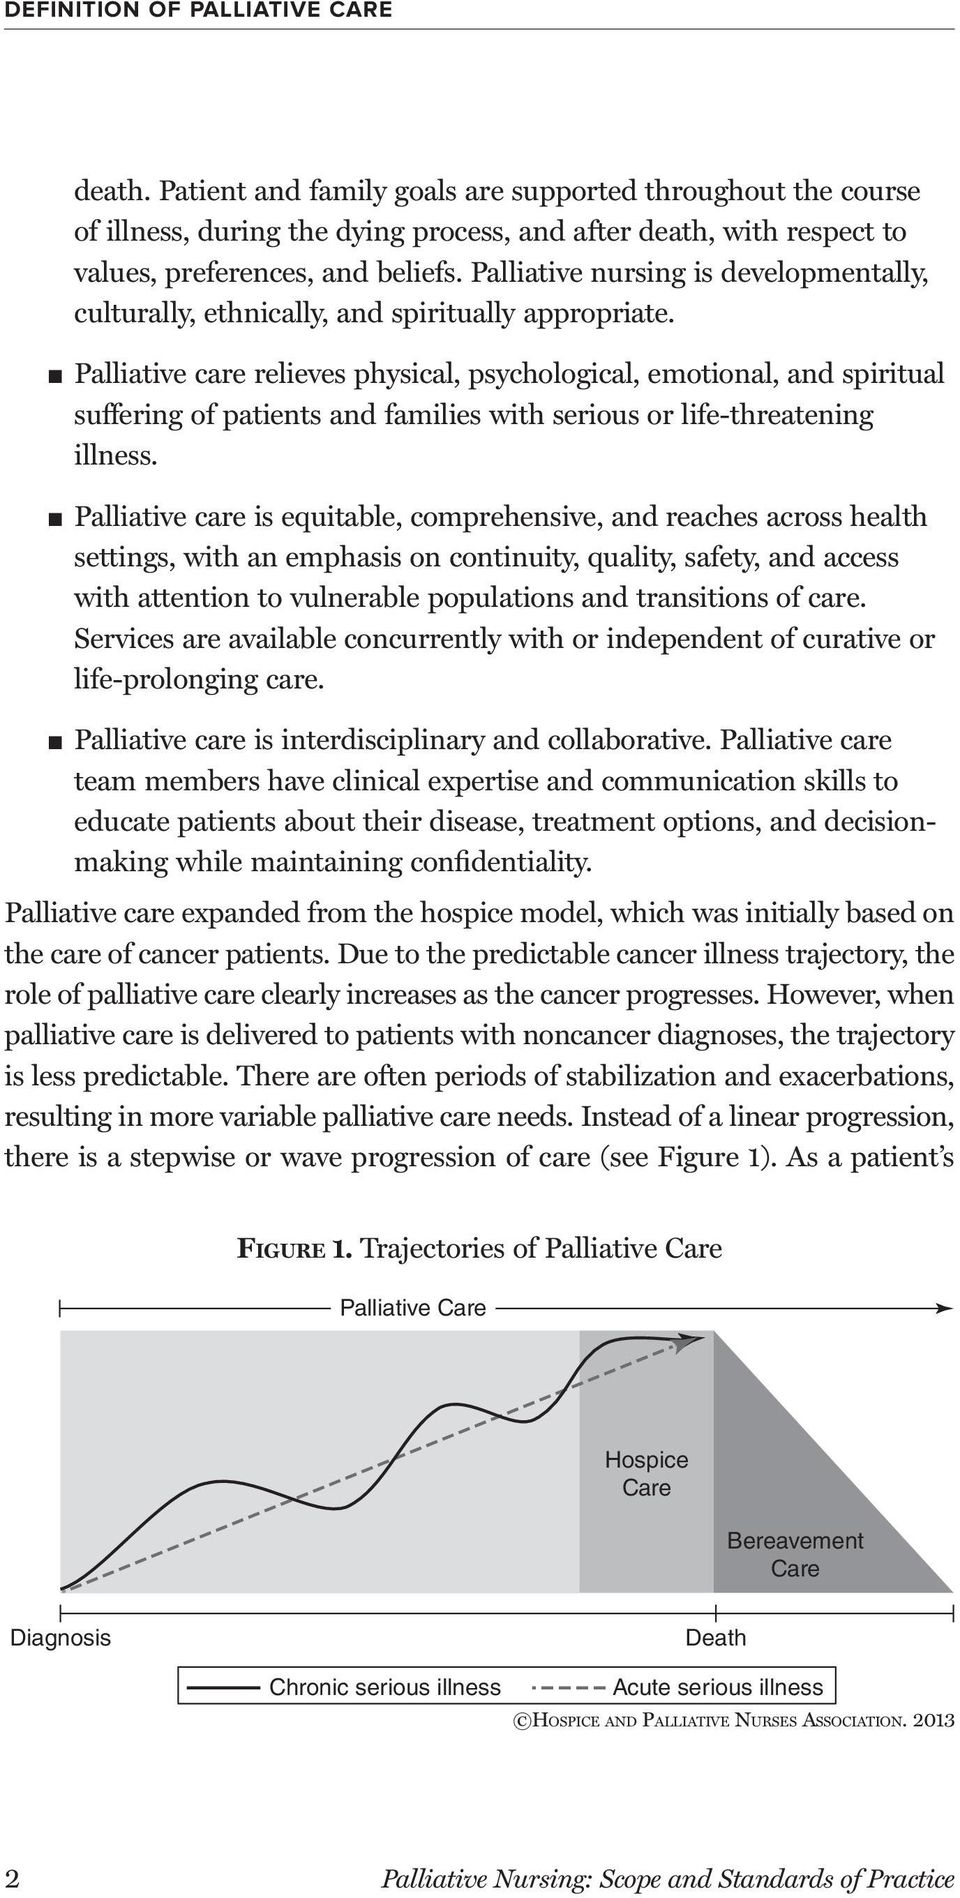 Palliative nursing is developmentally, culturally, ethnically, and spiritually appropriate.